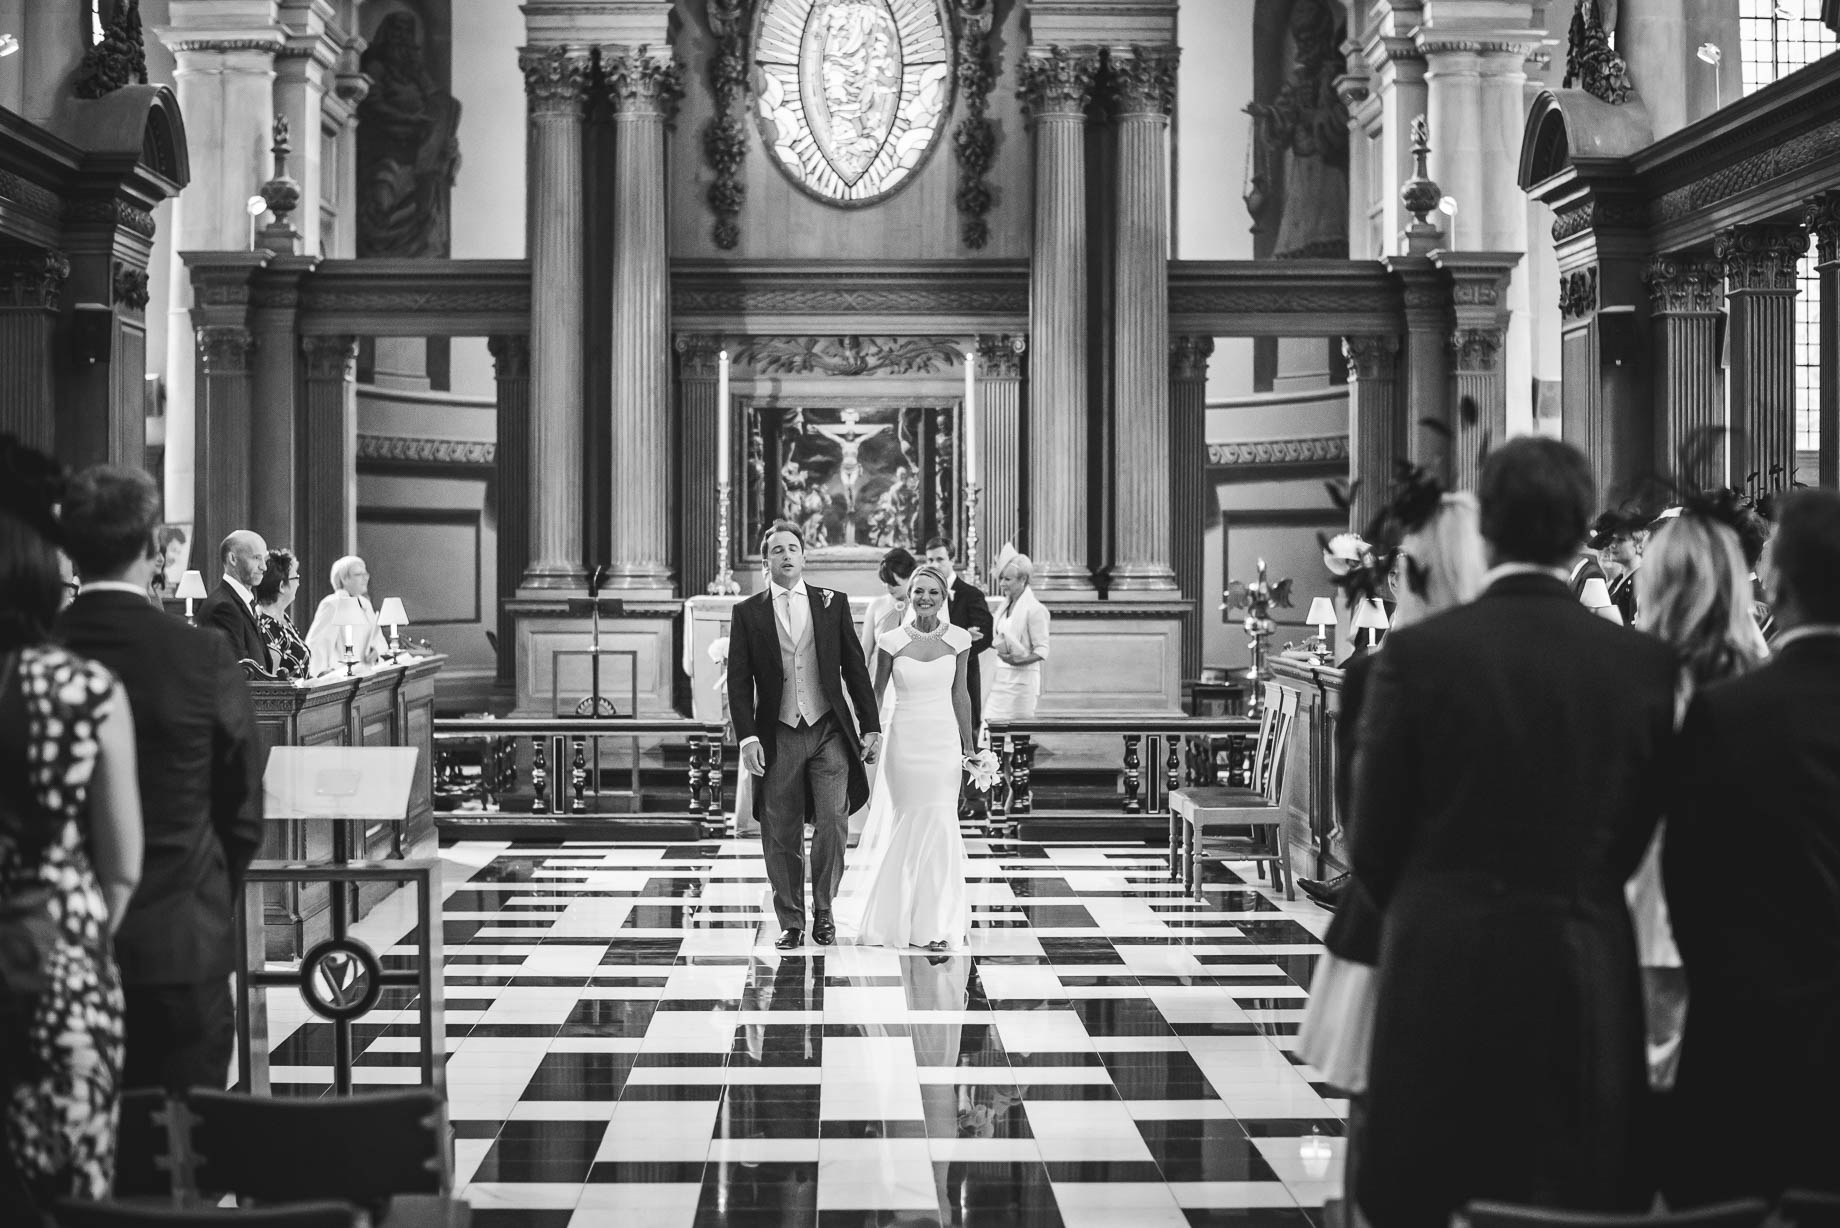 Shoreditch wedding photography - Guy Collier - Kat and Henry (84 of 200)